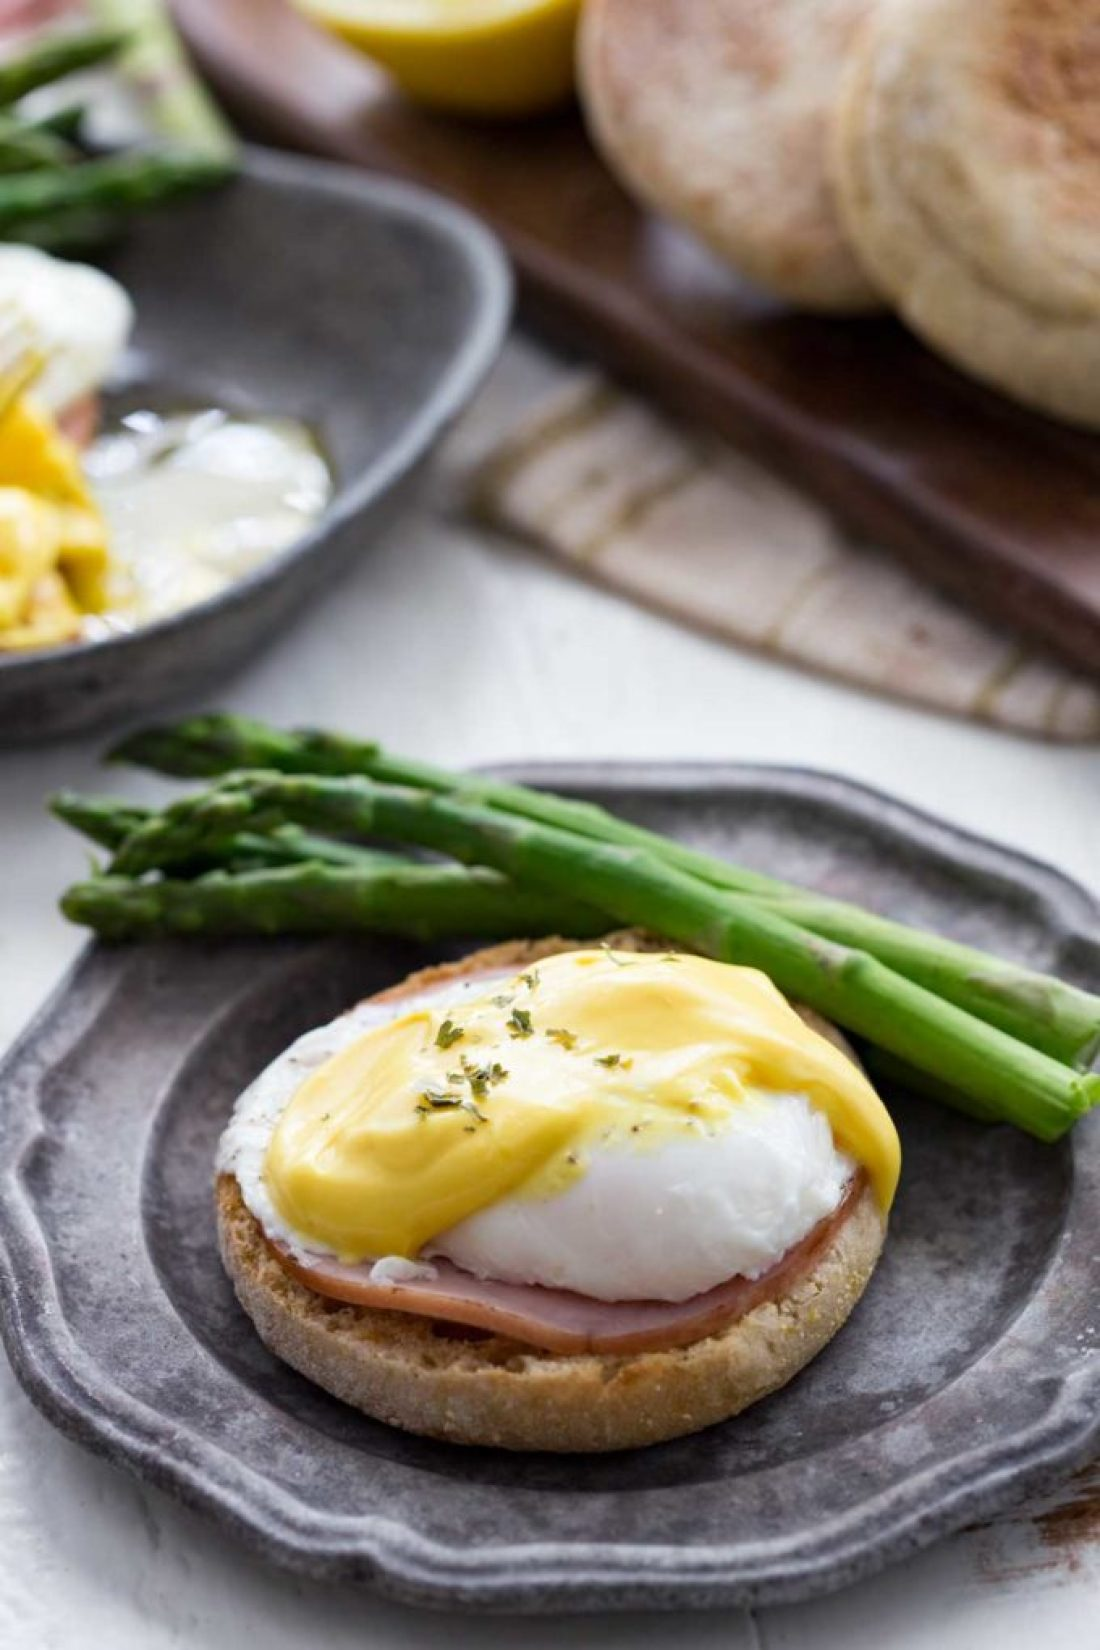 eggs benedict, eggs and breakfast meat, a healthy breakfast